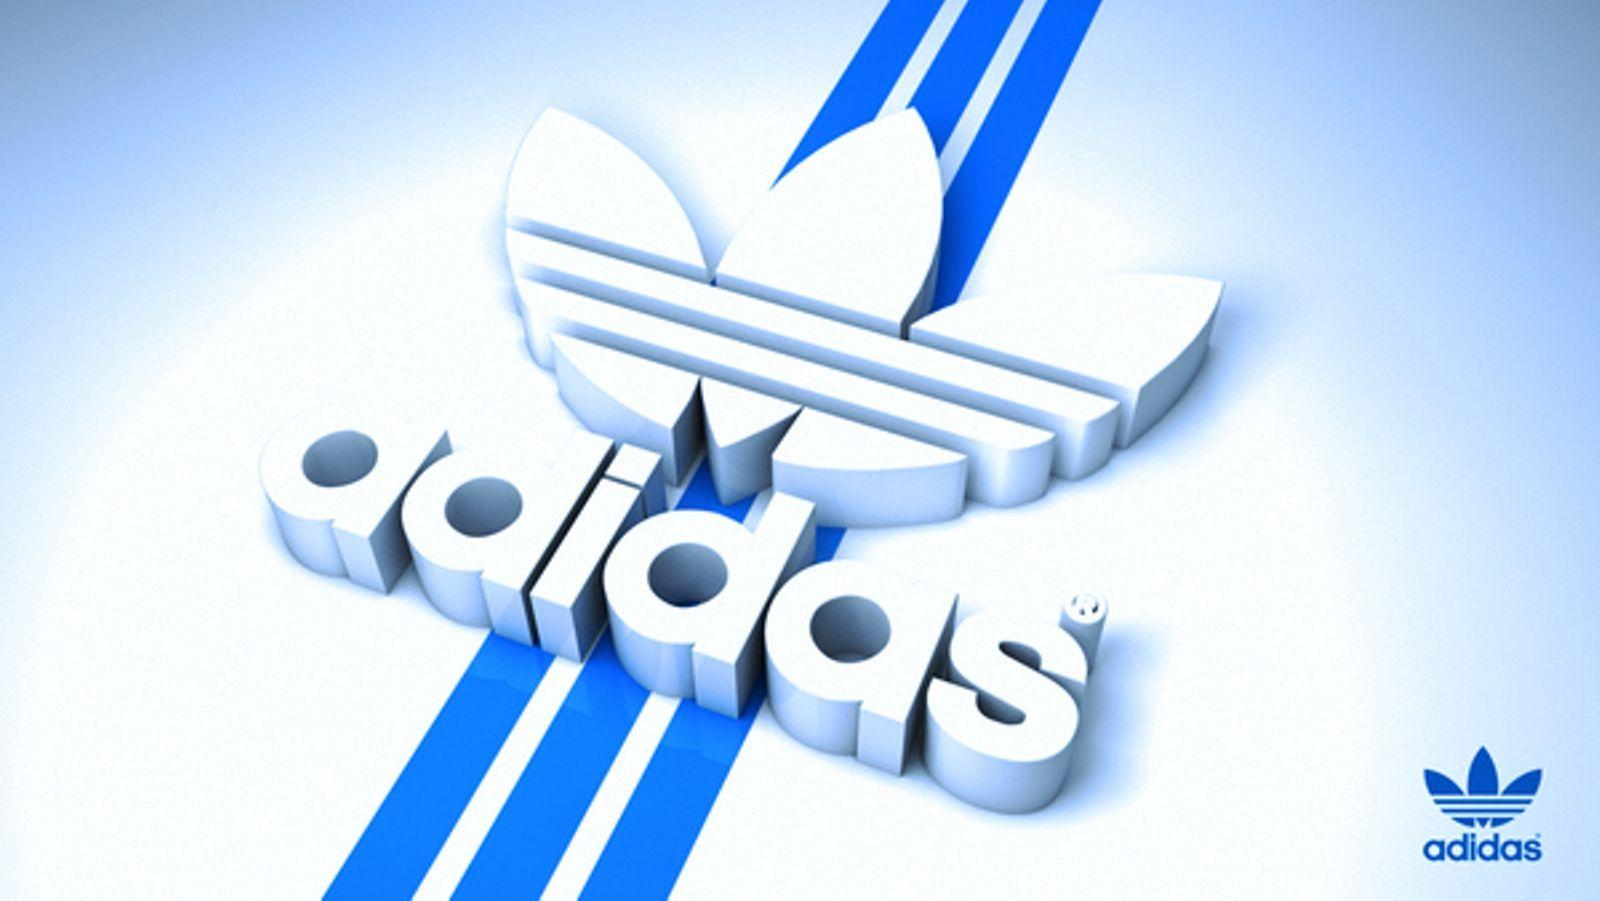 Adidas Wallpapers Hd Wallpaper Cave